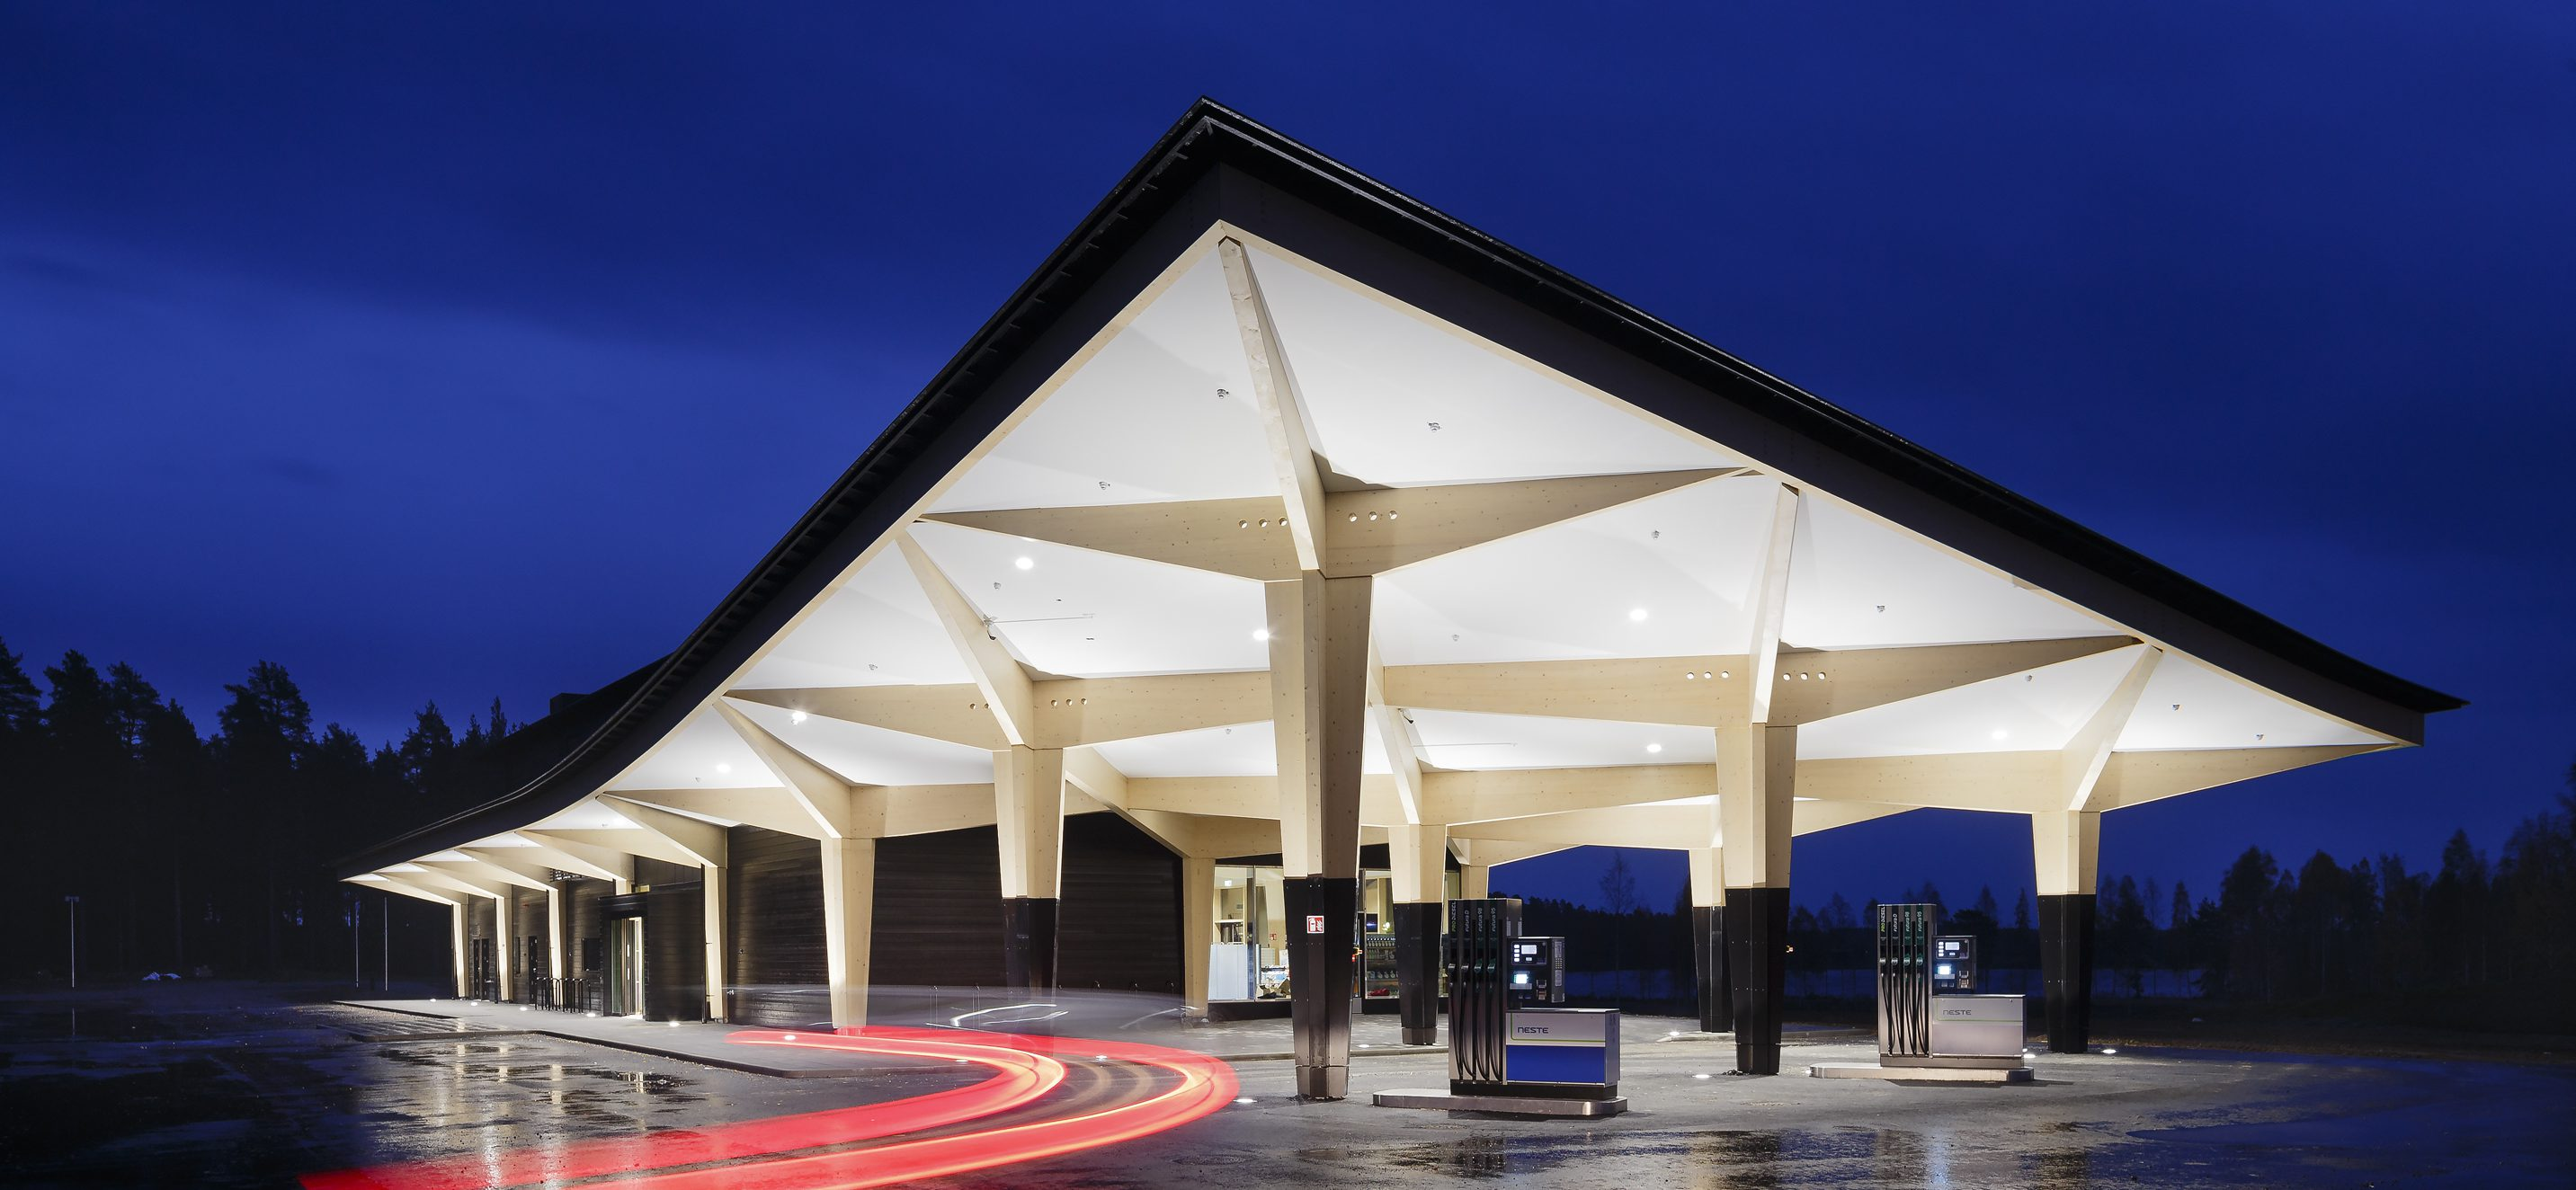 The 10 Most Beautiful Gas Stations In The World Ranked Quartz